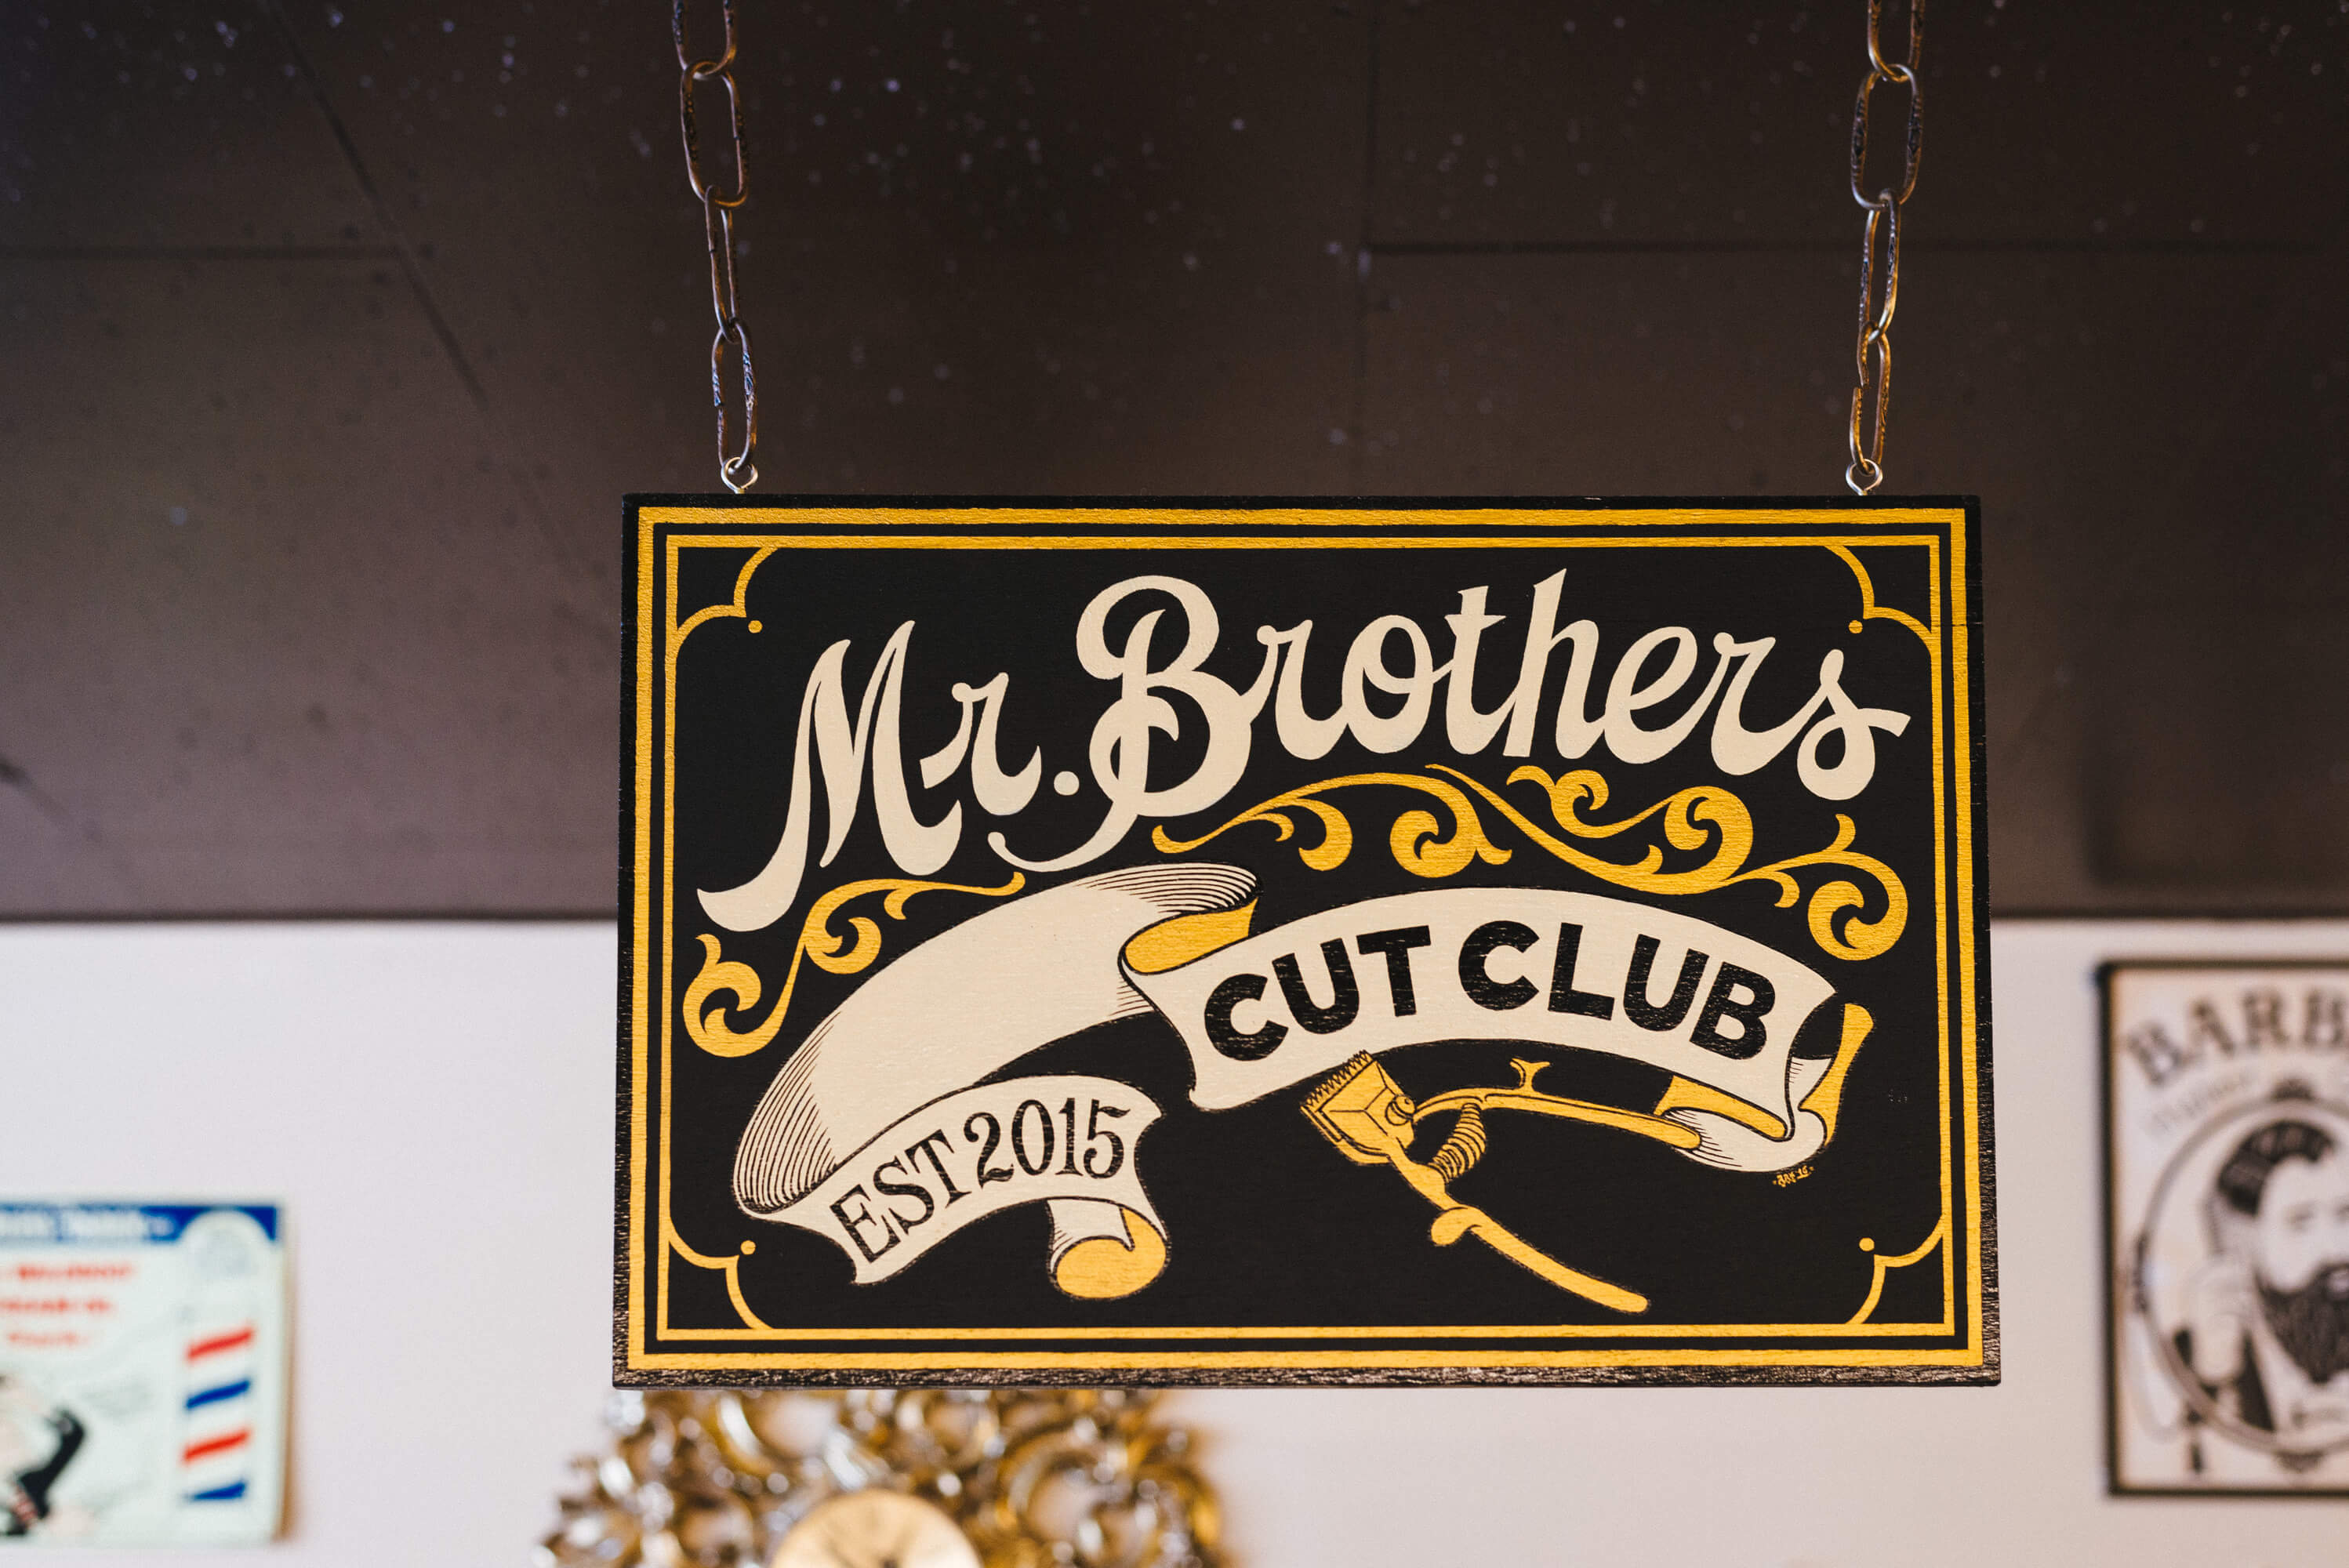 Mr Brothers original logo